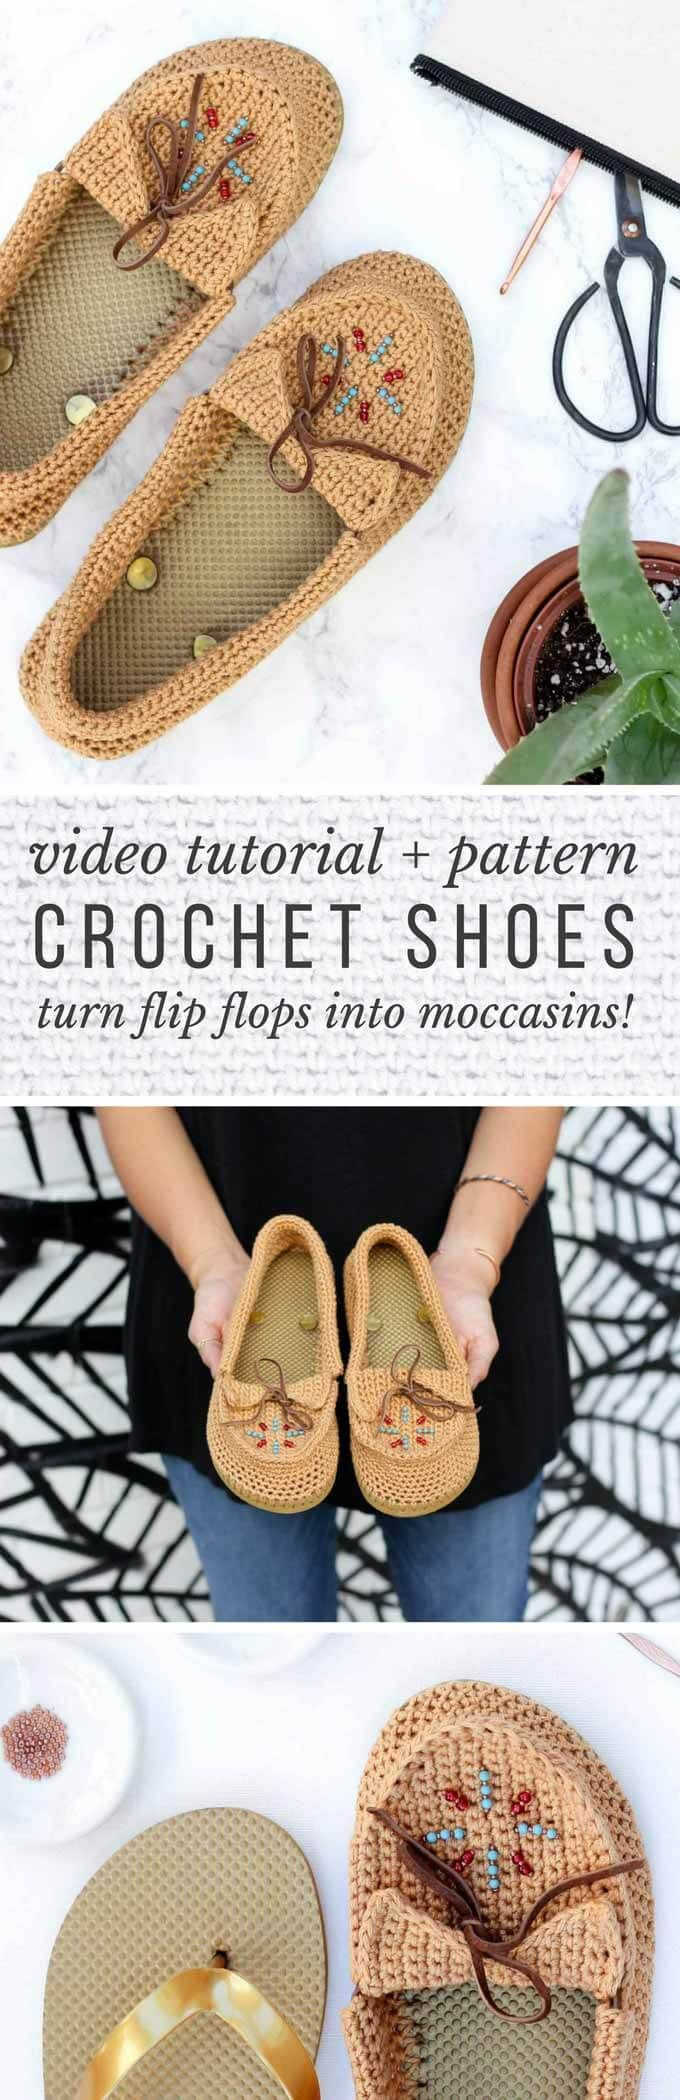 "Calling all boho fans! Learn how to crochet shoes with flip flop soles with this free crochet moccasin pattern and video tutorial! These modern crochet moccasins make super comfortable women's shoes or slippers and can be customized however you wish. Made from Lion Brand 24/7 Cotton in ""Camel"" color. via @makeanddocrew"